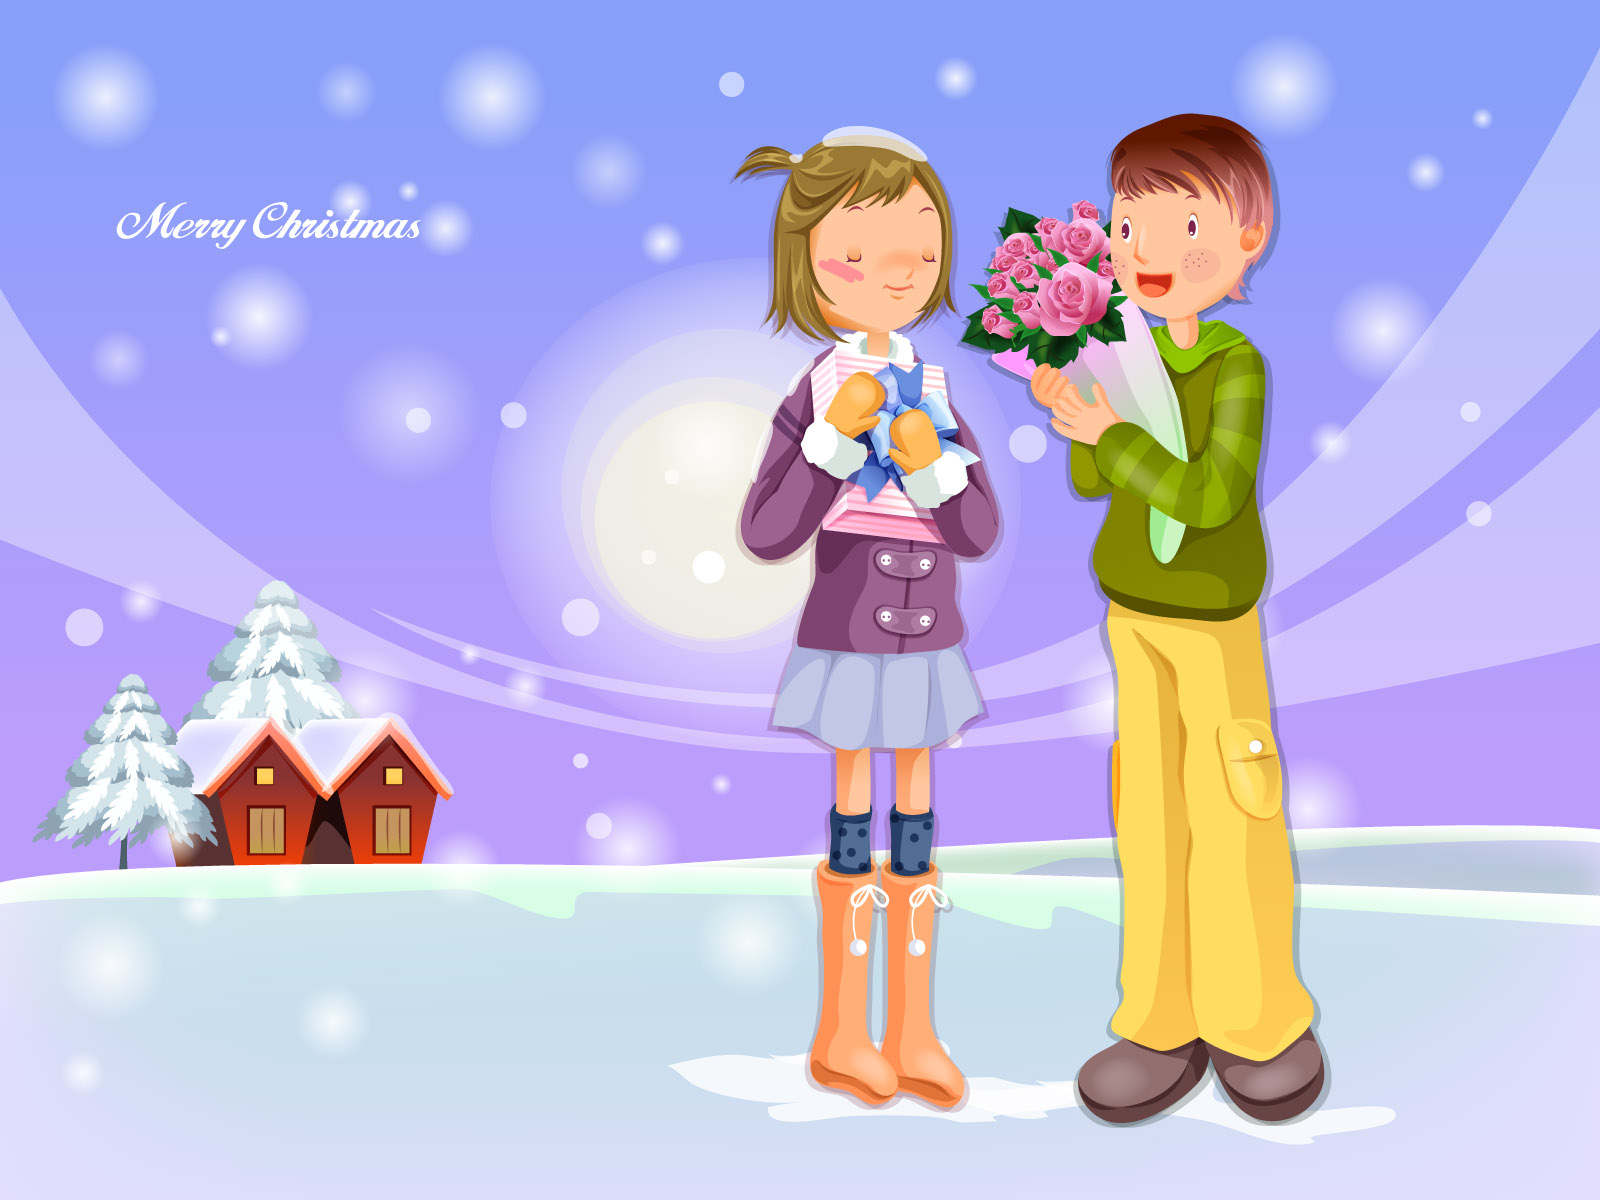 merry christmas wallpapers sweet love